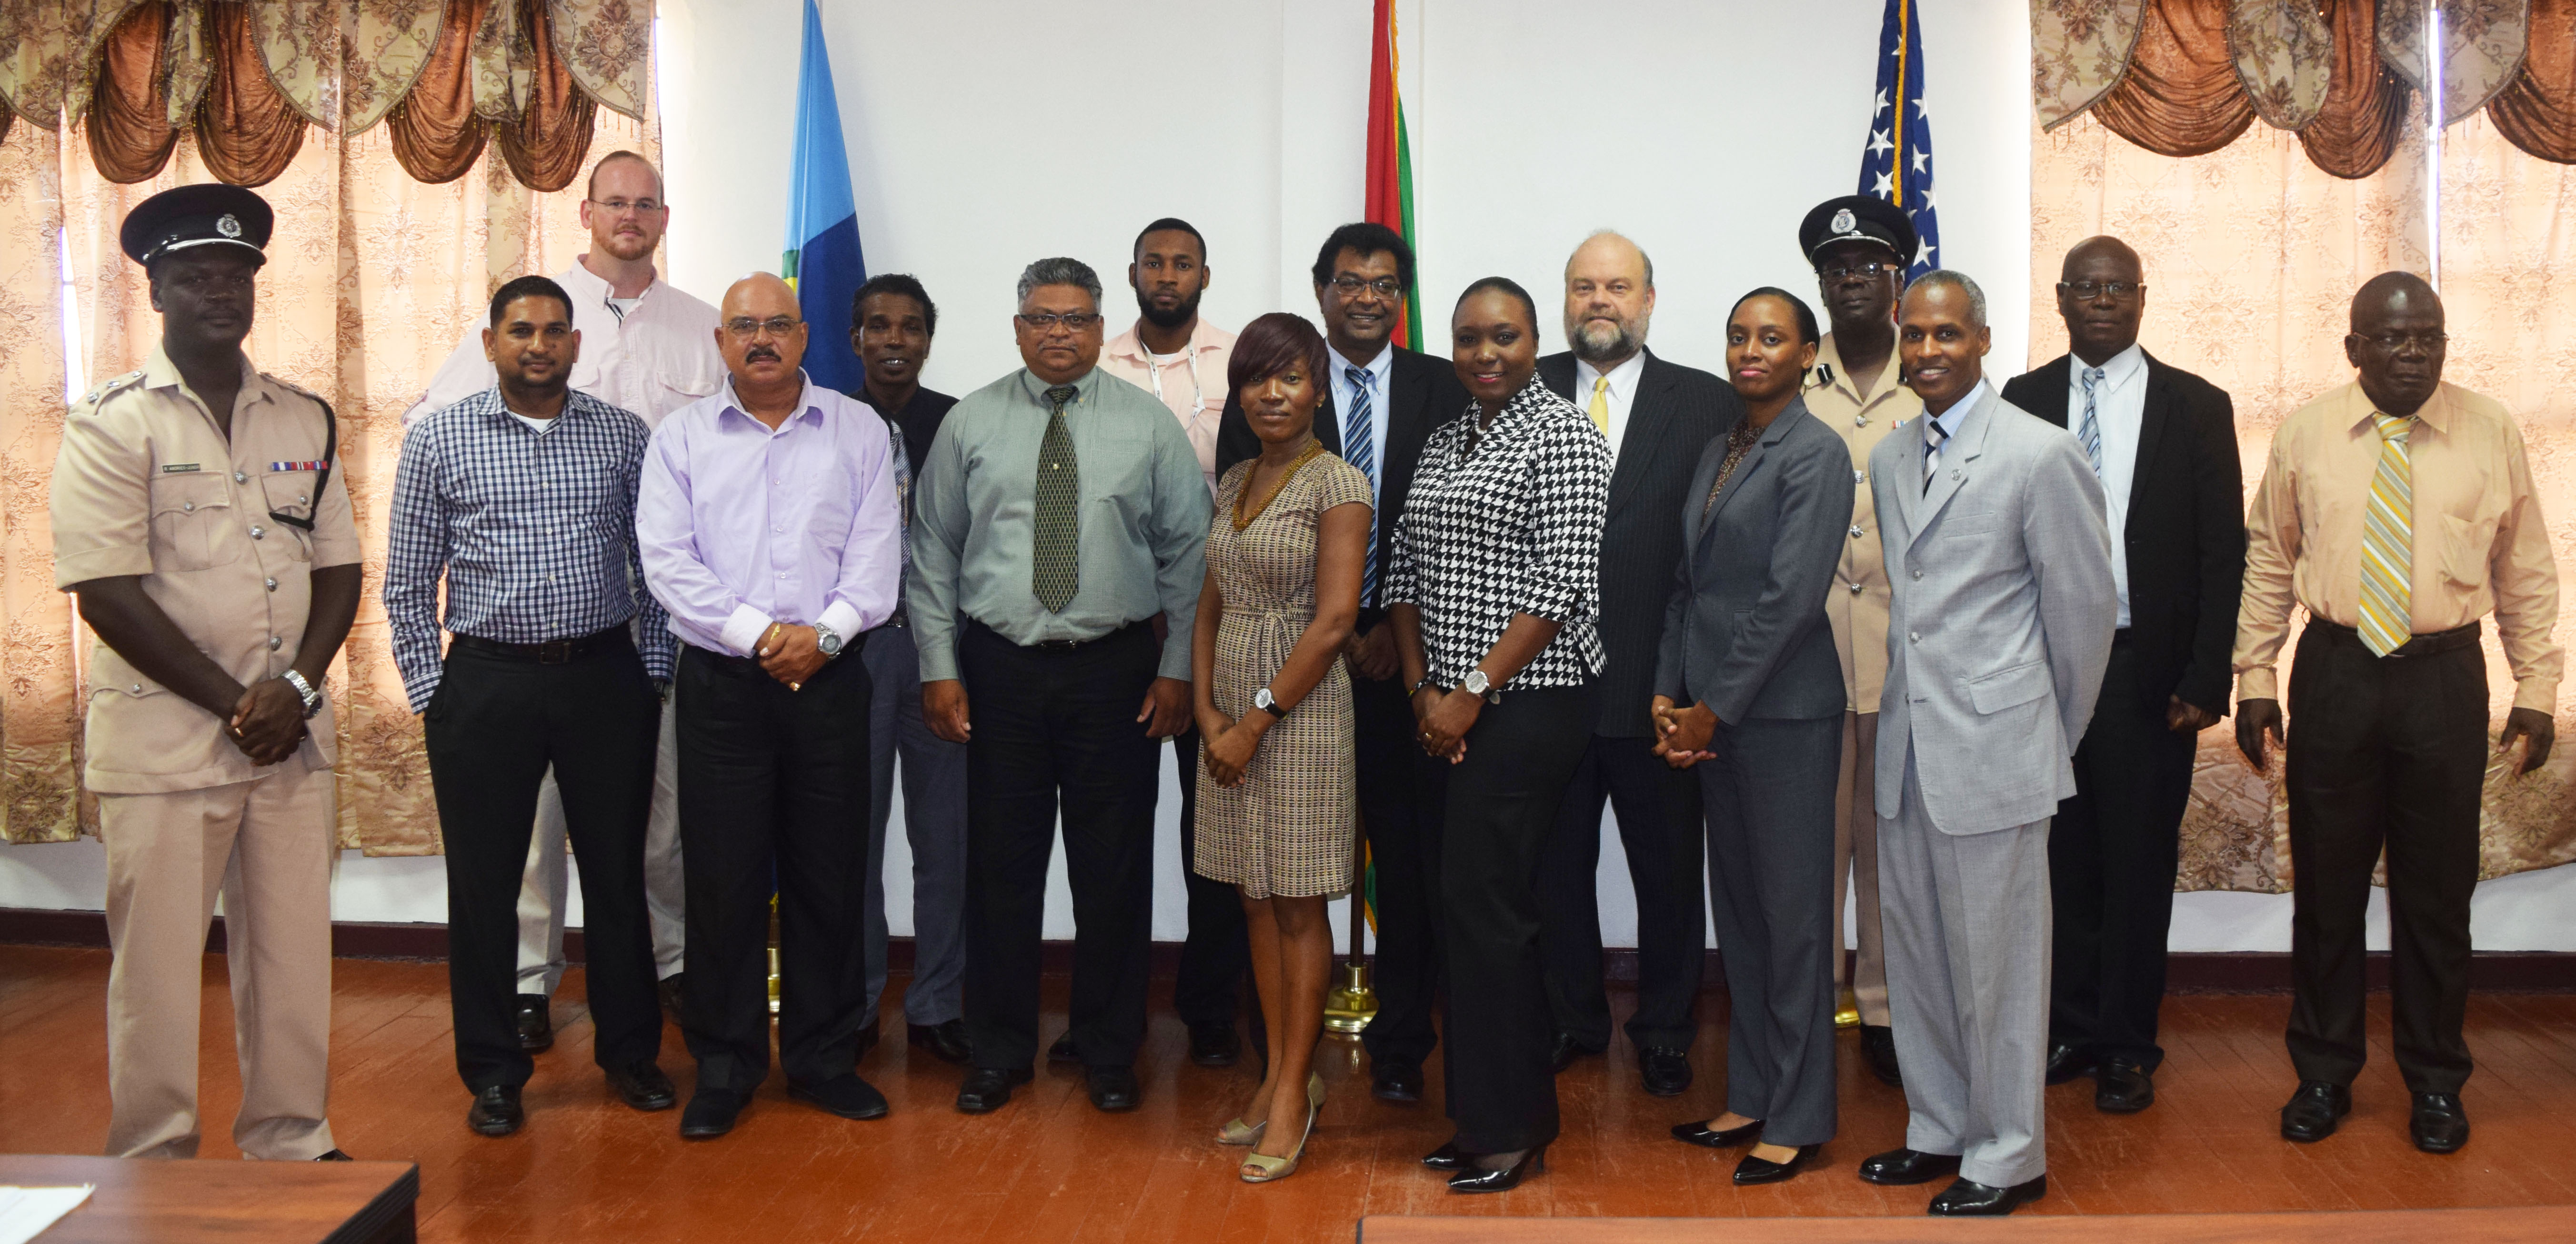 The participants with trainers, Public Security Minister, Khemraj Ramjattan and US Ambassador Perry Holloway. (US Embassy photo)